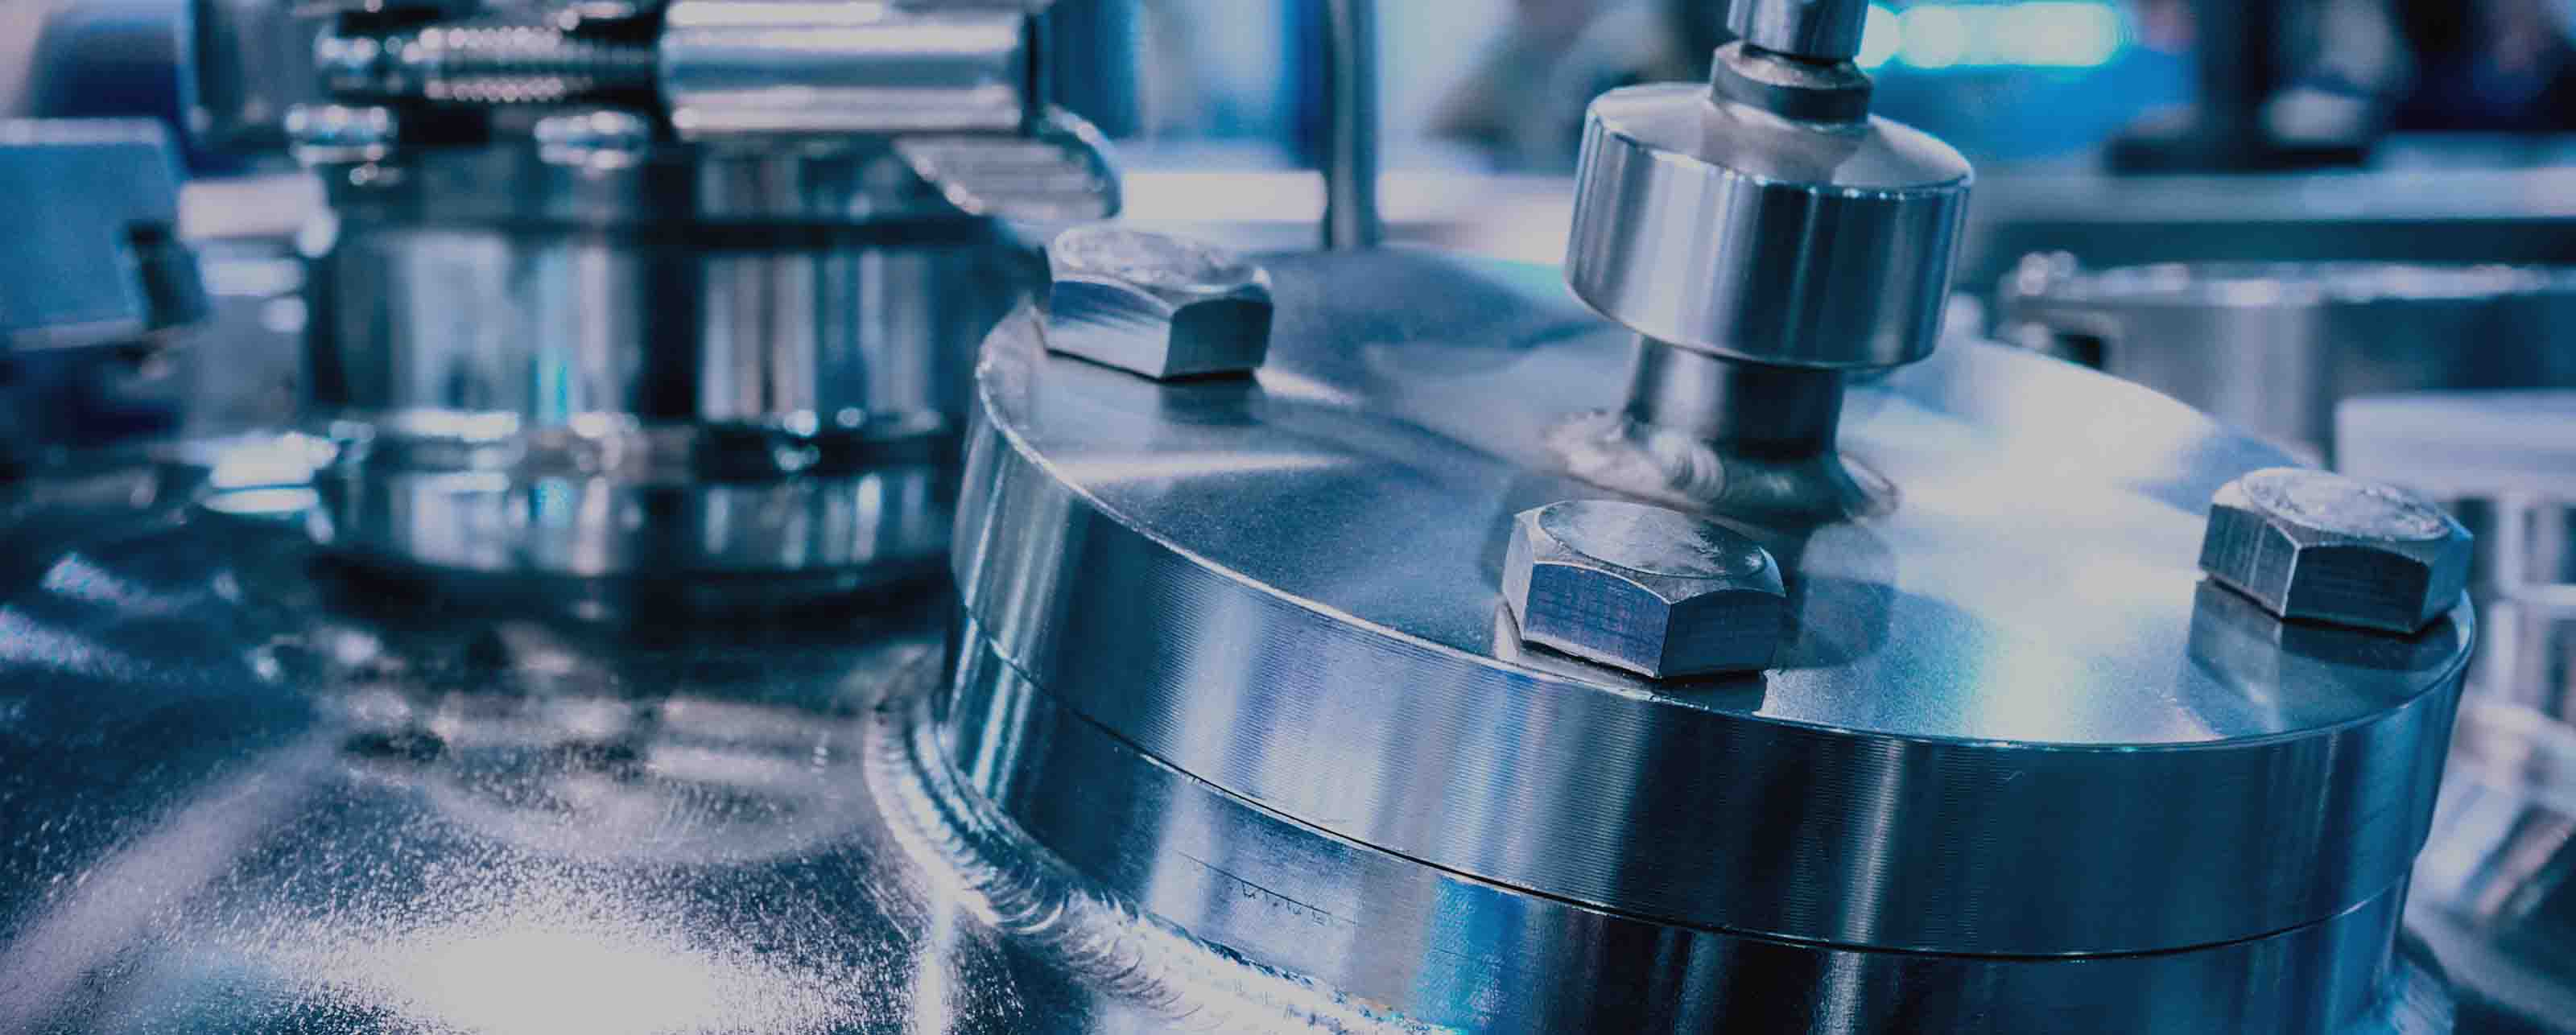 GE Digital software helps pharmaceutical manufacturers optimize production